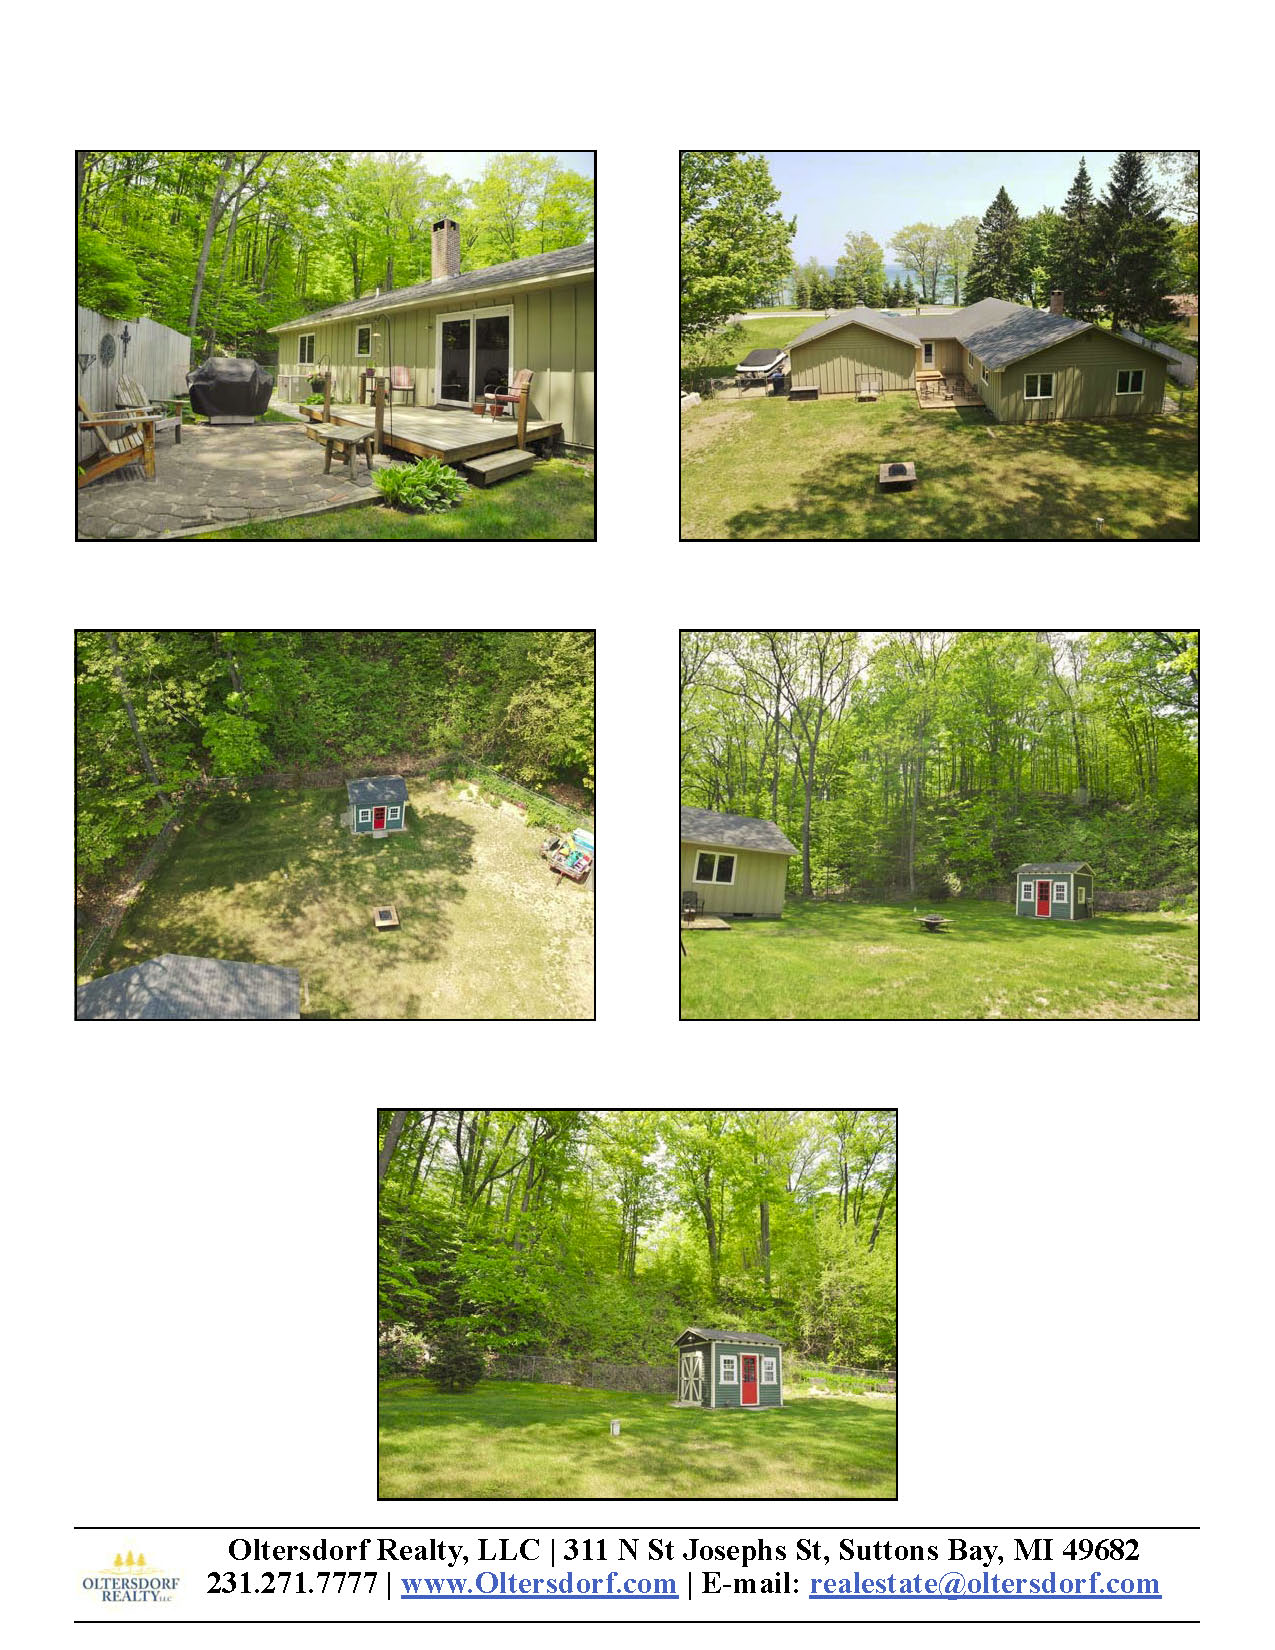 10142 S West Bay Shore Drive, Traverse City, MI - For sale by Oltersdorf Realty LLC - Marketing Packet (3).jpg